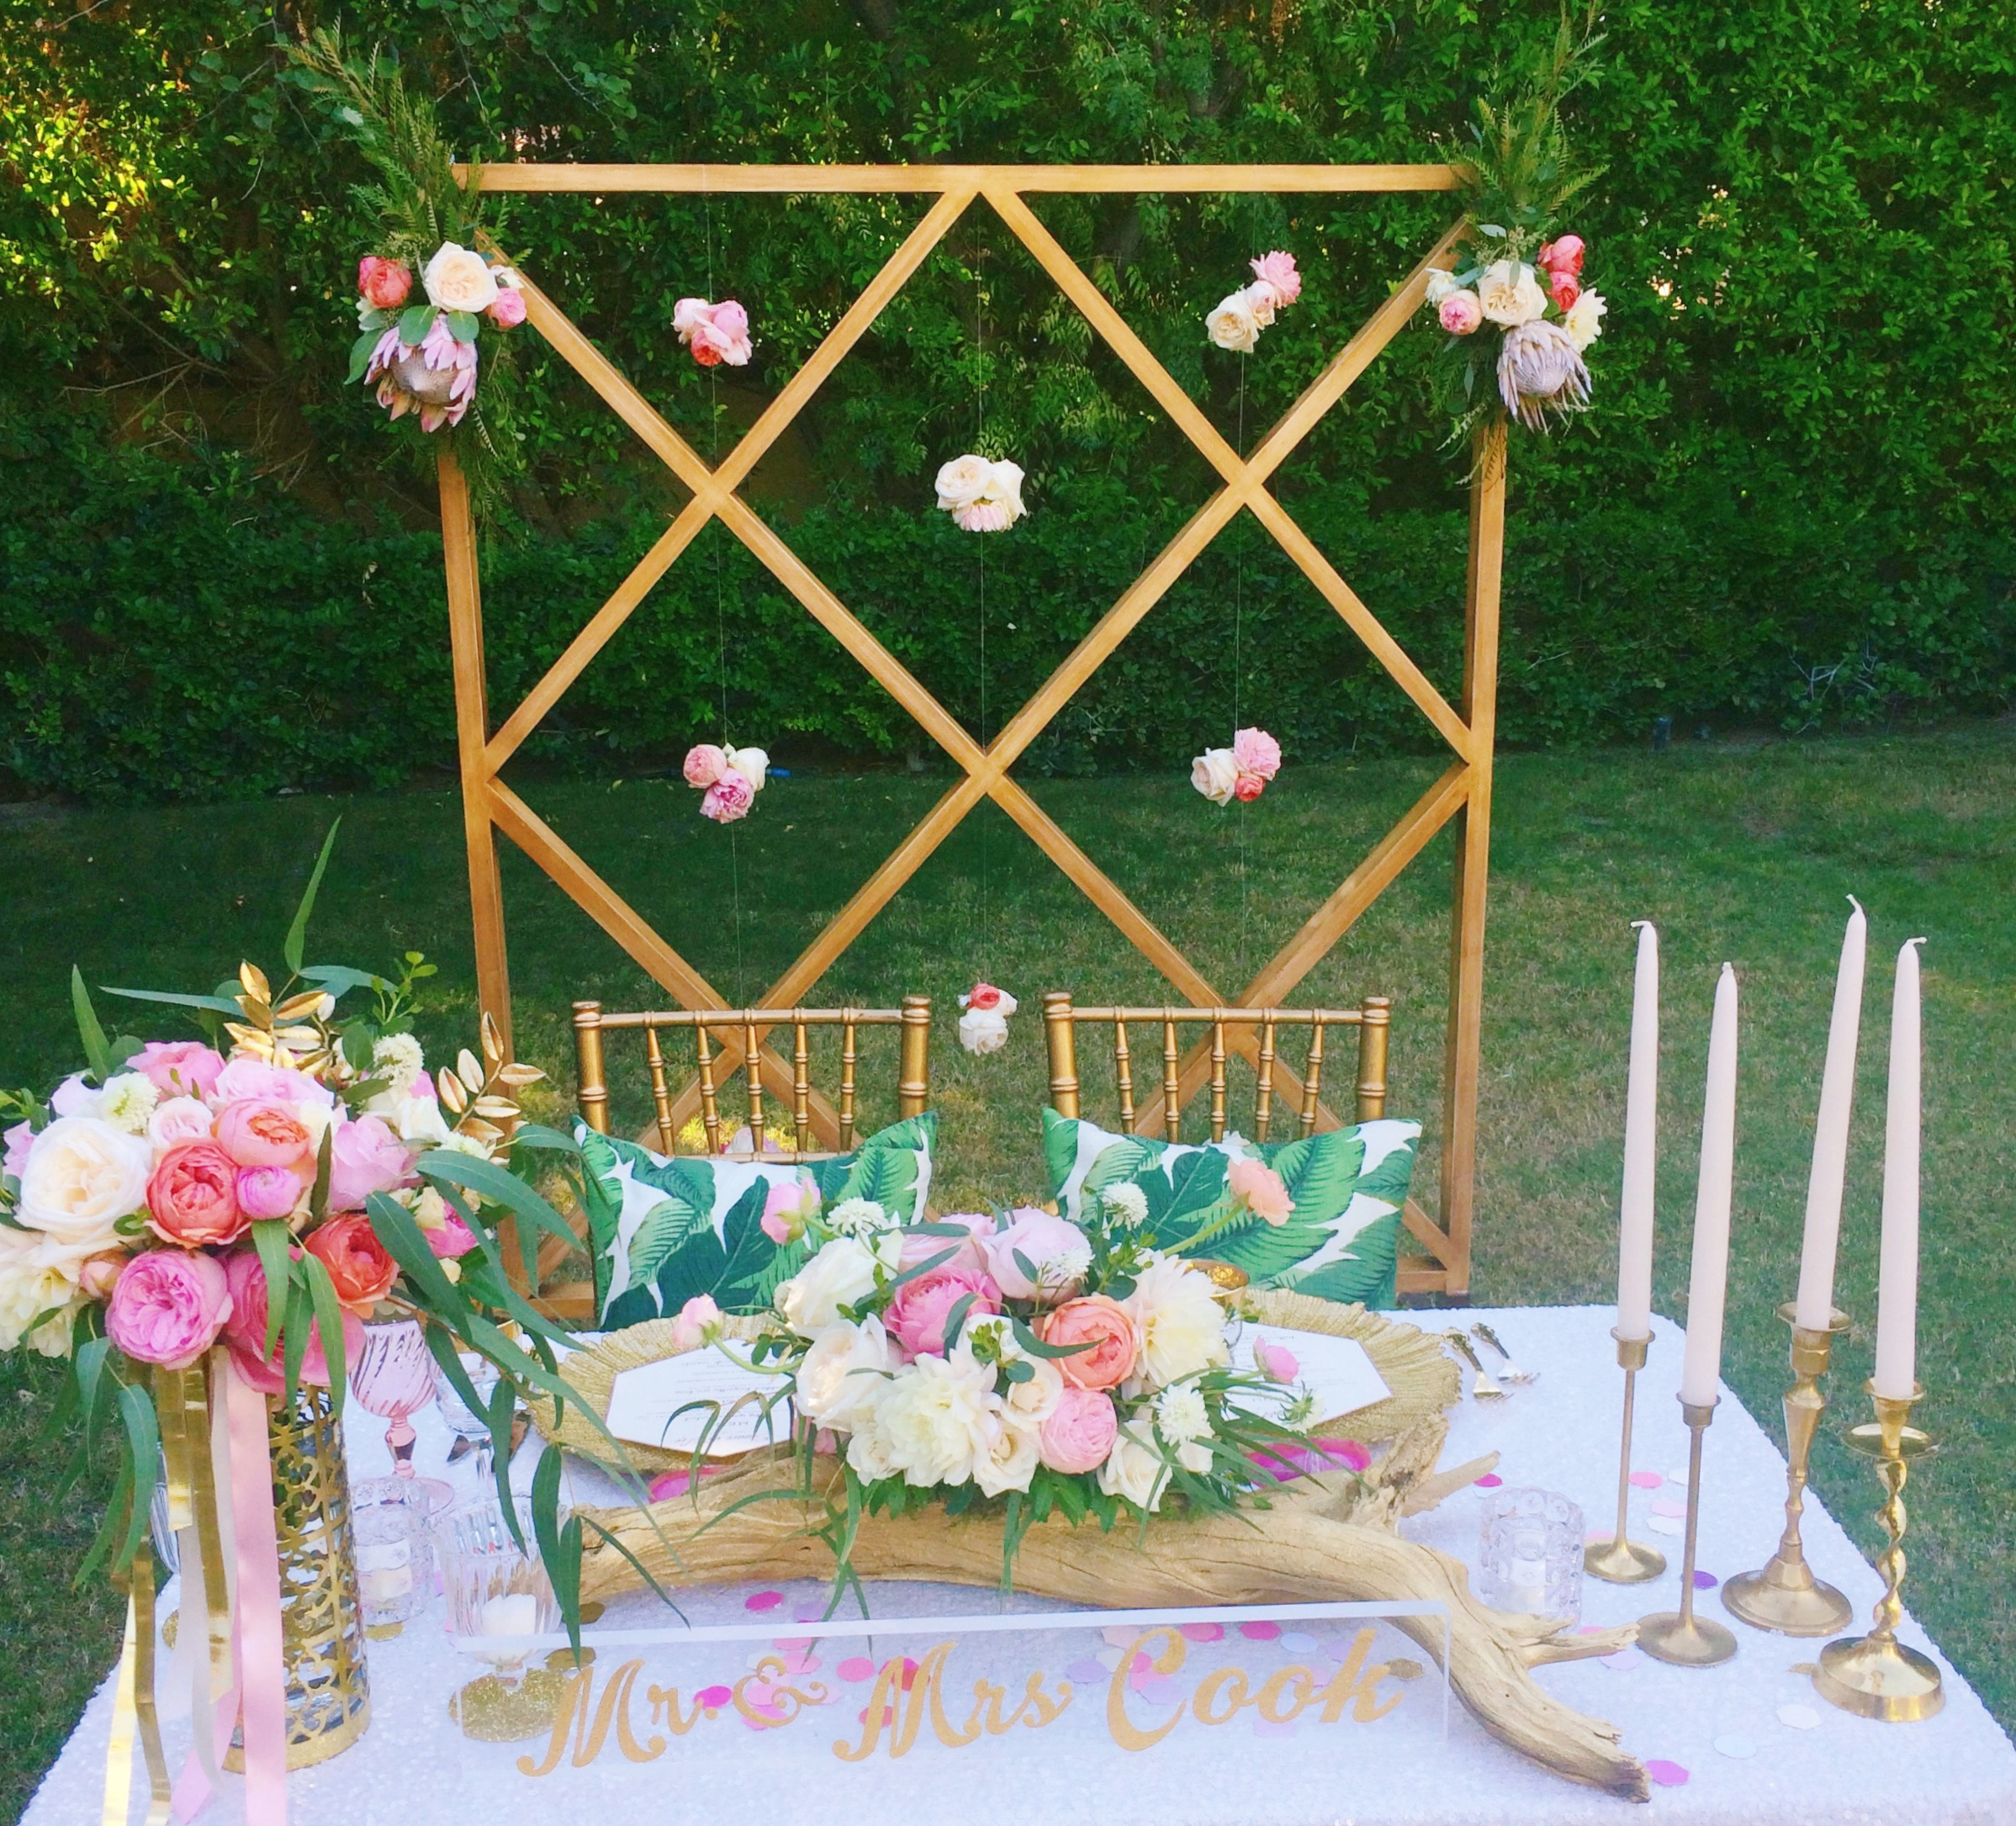 The lovely sweetheart table where we re-used the ceremony backdrop!